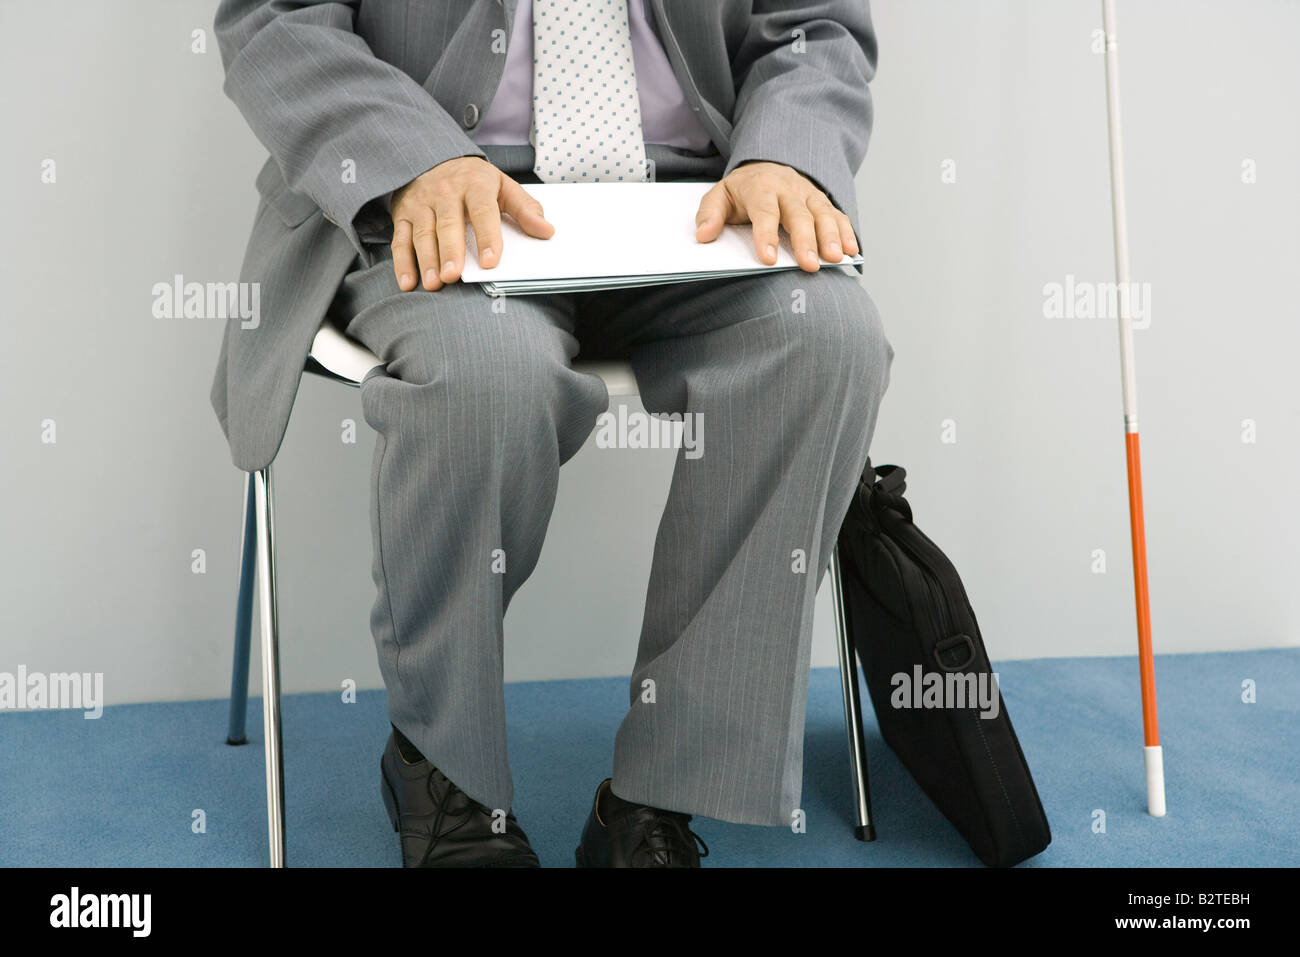 Businessman sitting in chair, white cane propped beside him, holding document, cropped Stock Photo